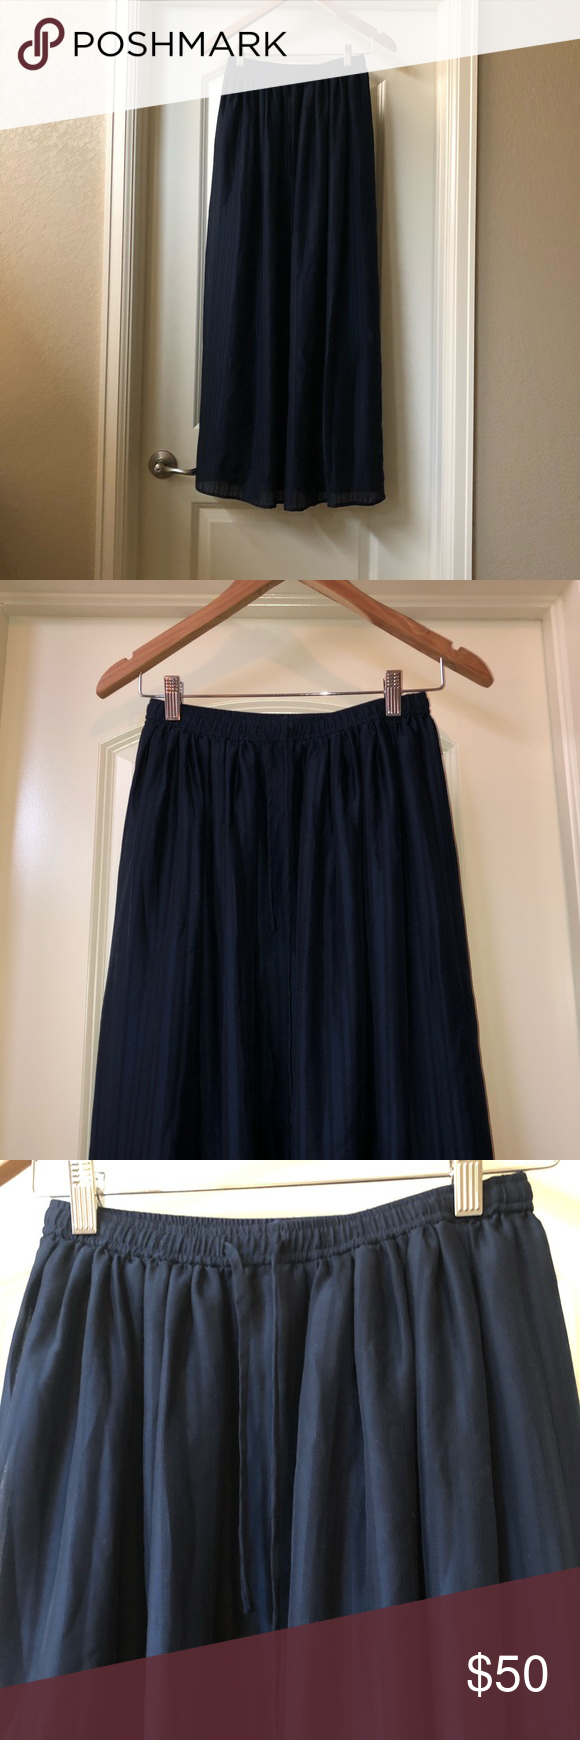 90475cc60 Madewell maxi skirt - new without tags Madewell skyward maxi skirt -  beautiful deep navy color. Size CS, tags removed never worn. Madewell  Skirts Maxi